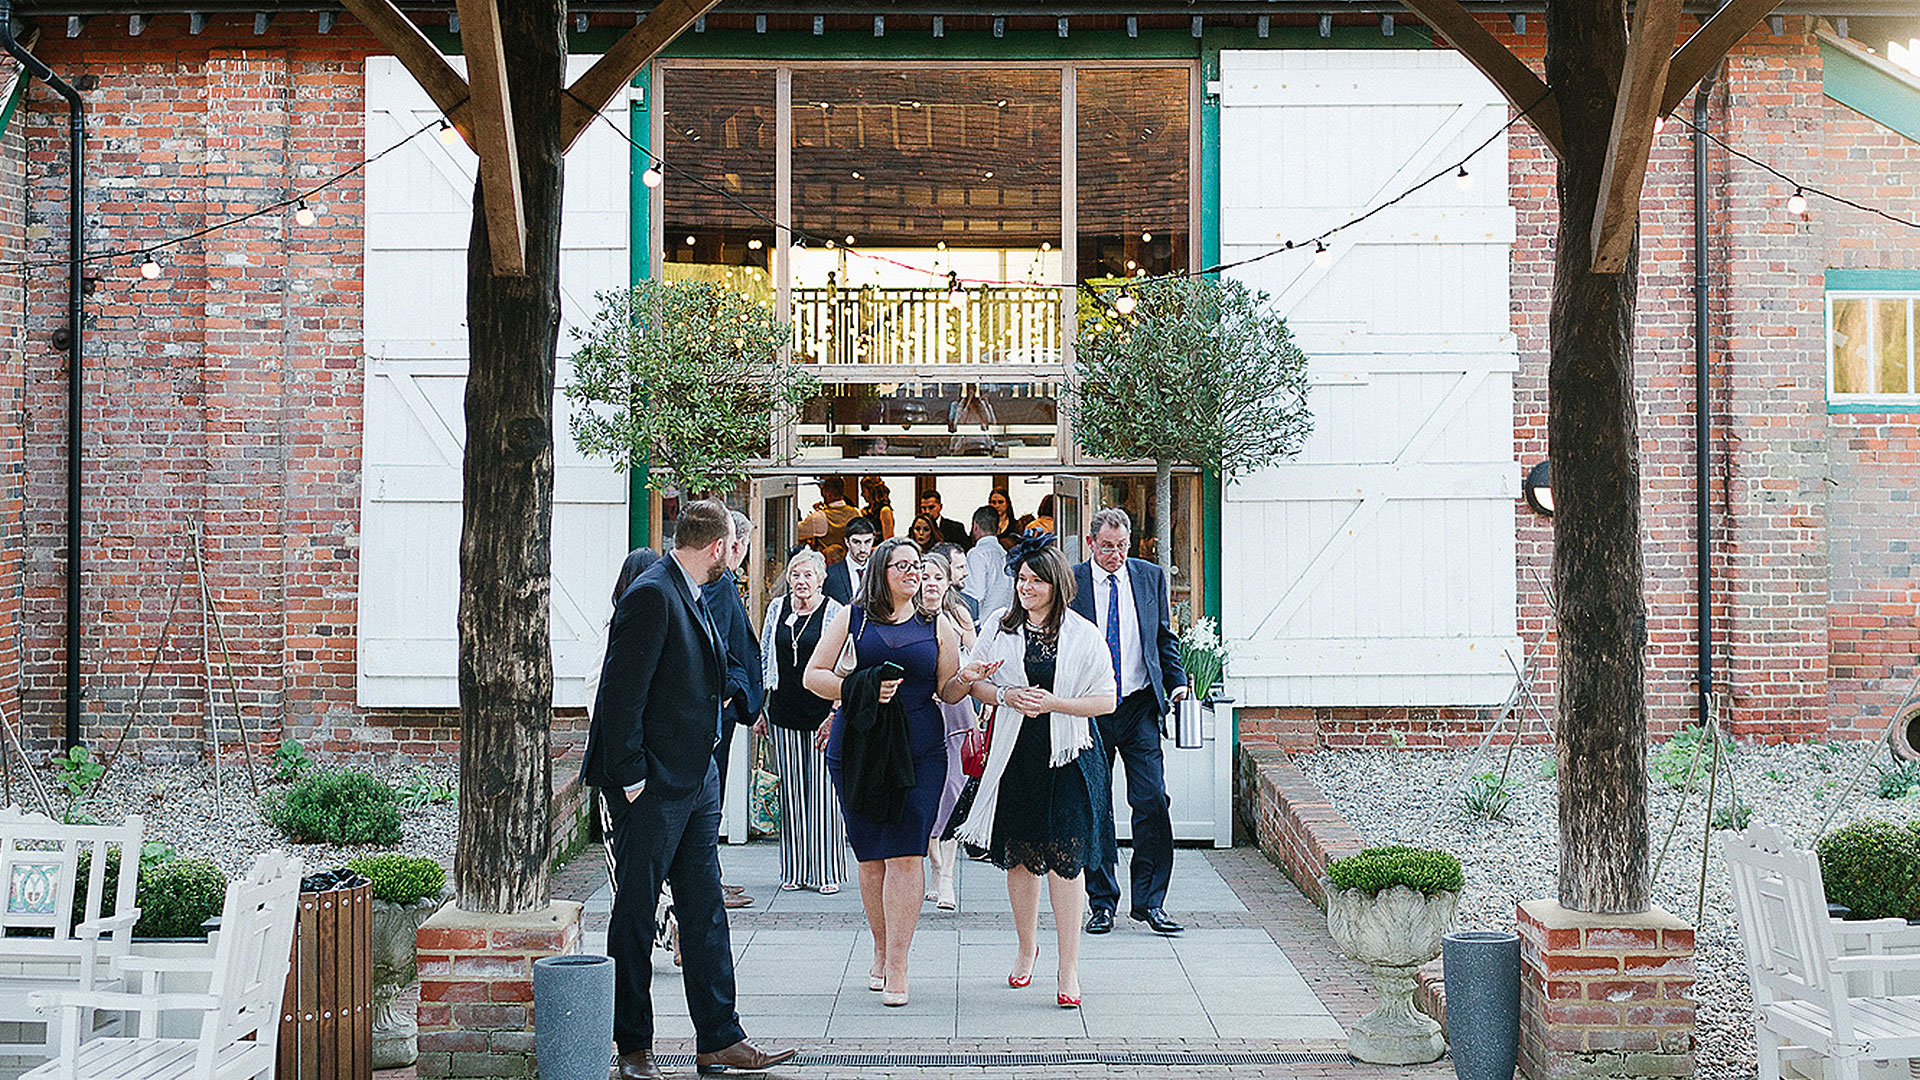 Guests leave the Mill Barn wedding barn in Essex - wedding reception venue